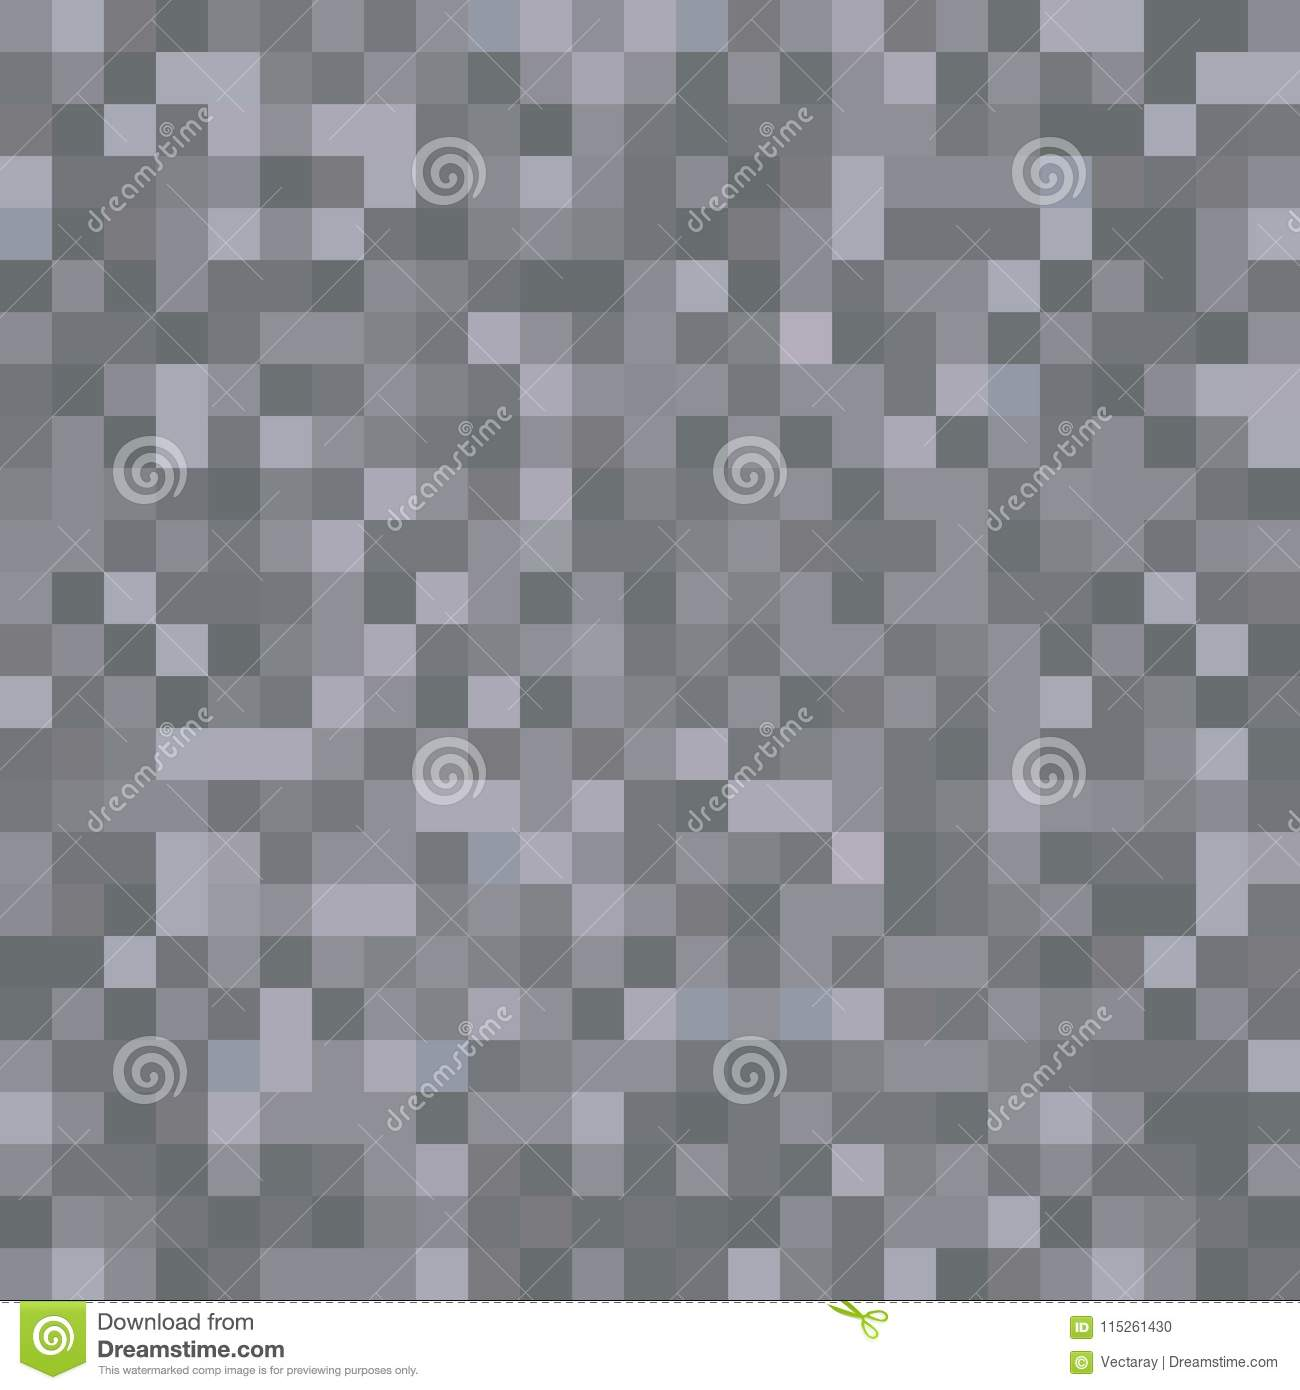 Seamless Pixelated Dark Stone Texture Mapping Background Wallpaper For Various Digital Applications